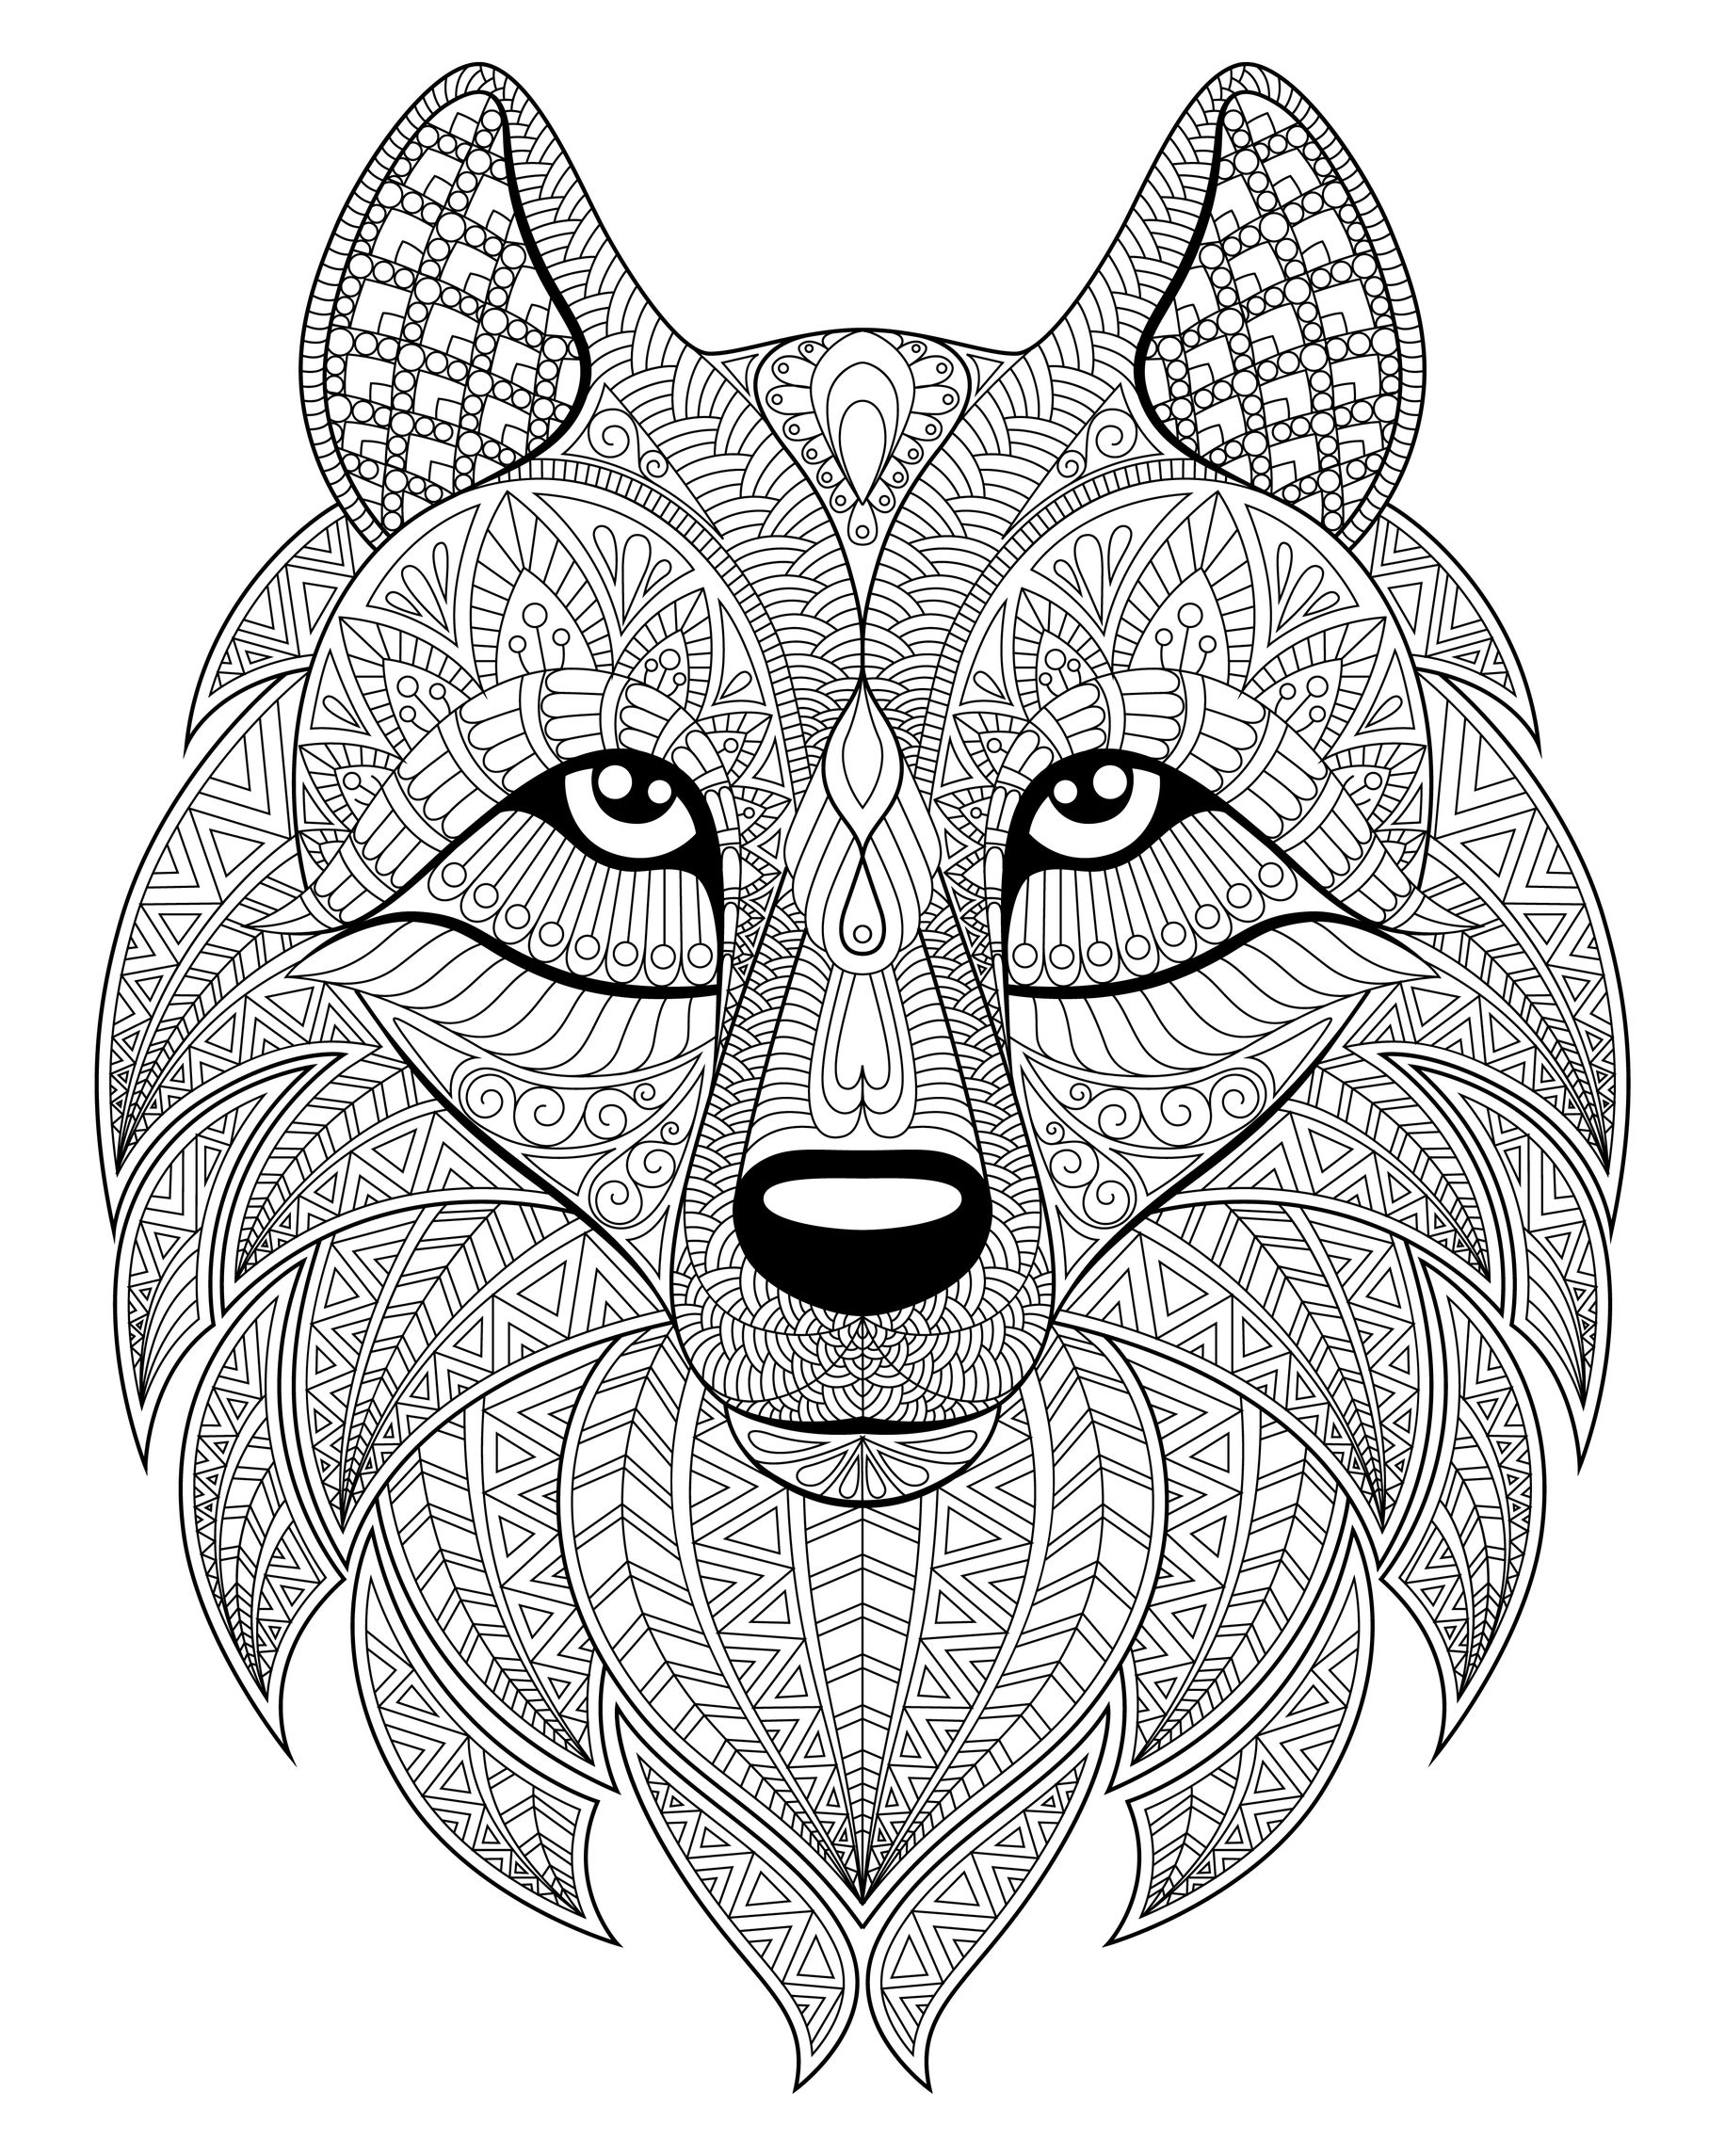 wolf coloring images free printable wolf coloring pages for kids with images wolf coloring images